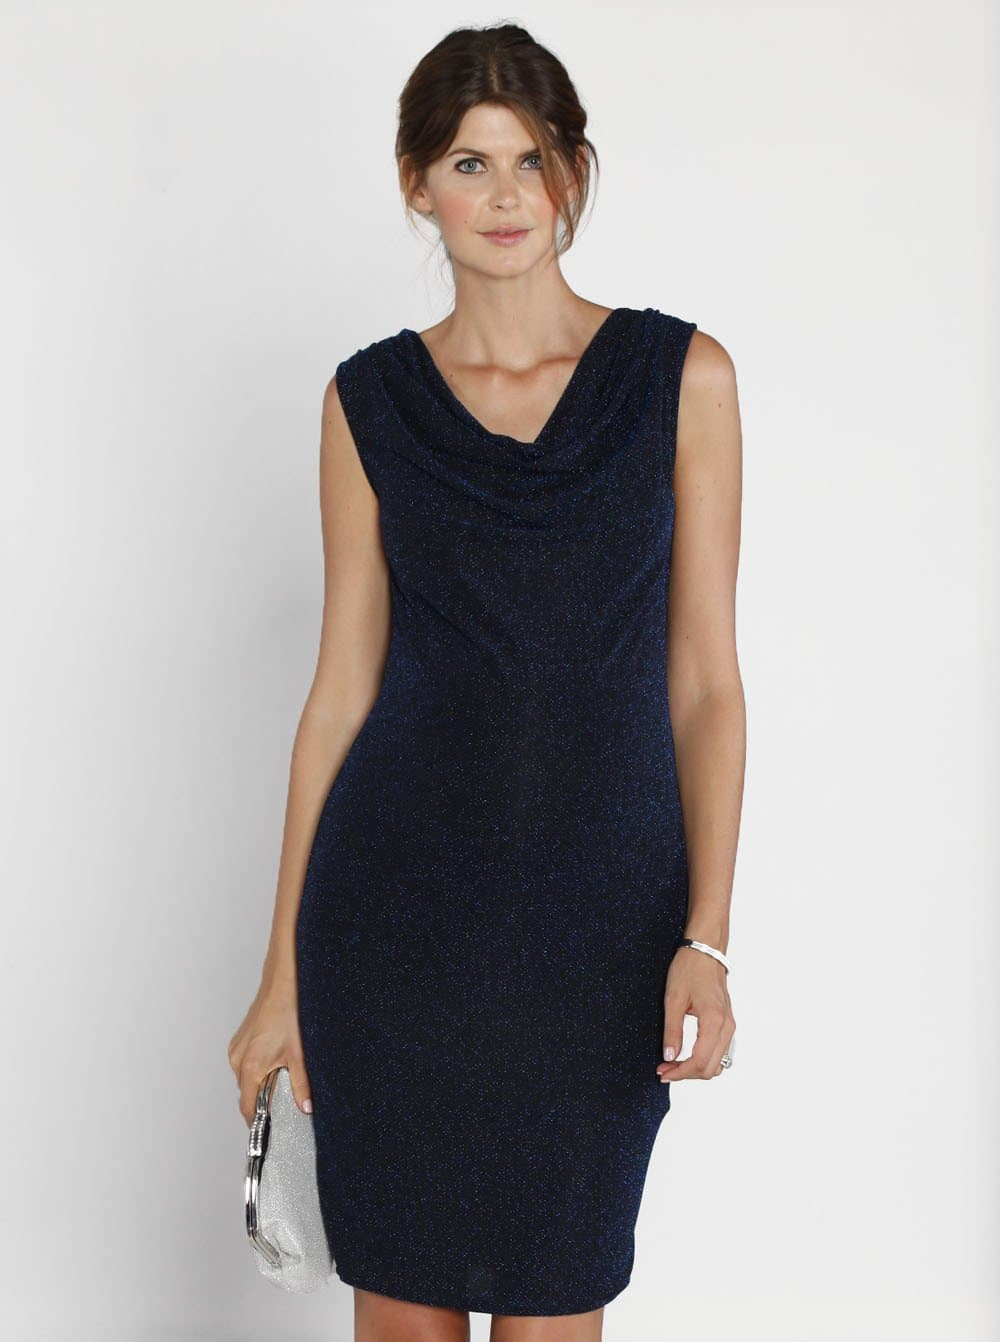 Maternity Cowl Neckline Sparkly Party Dress - Navy - Angel Maternity - Maternity clothes - shop online